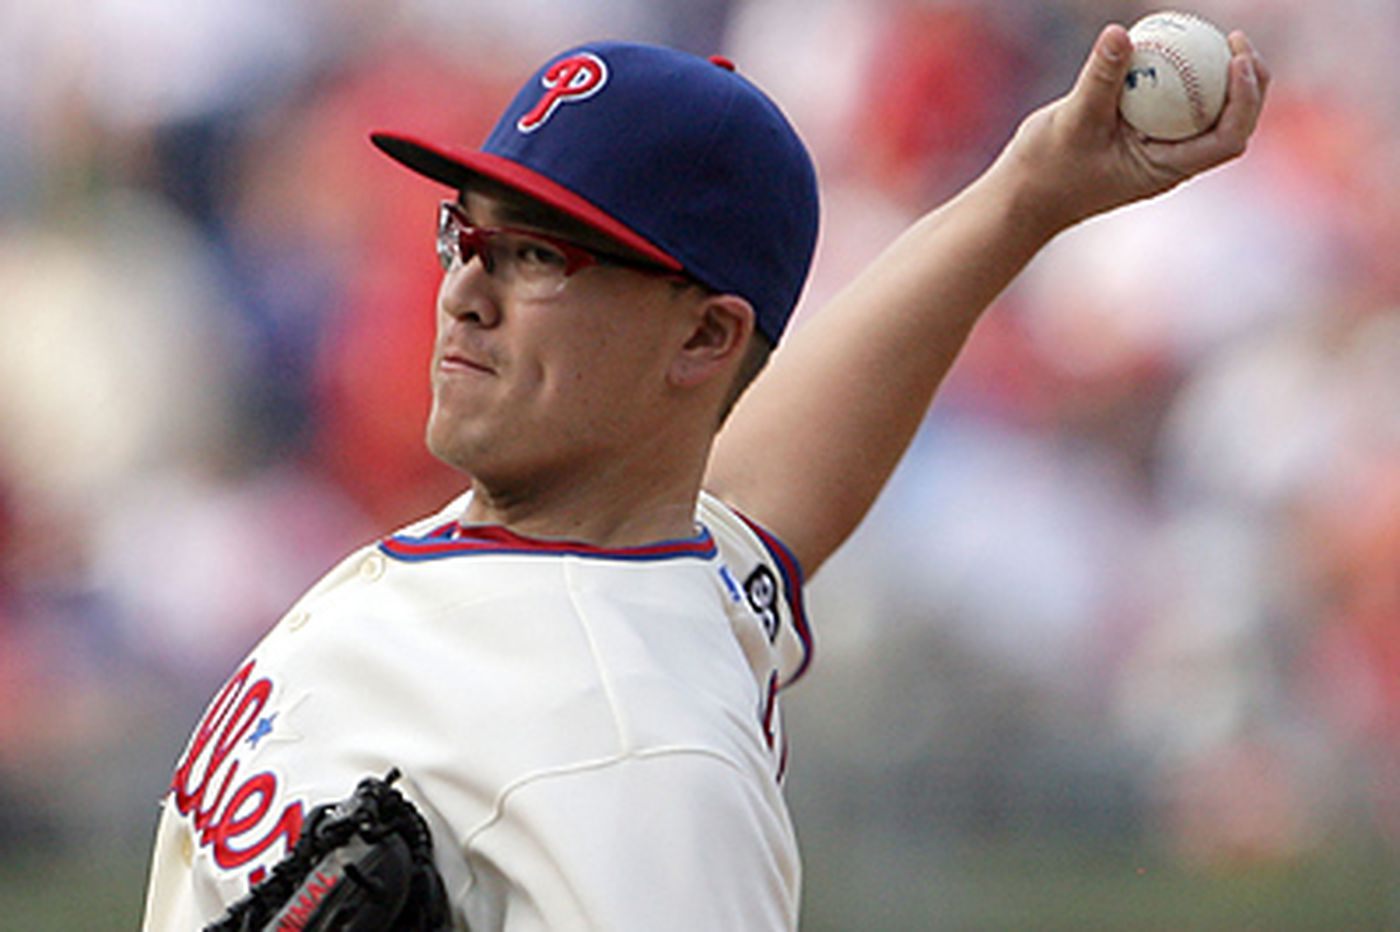 Phils quiet on rotation for Braves